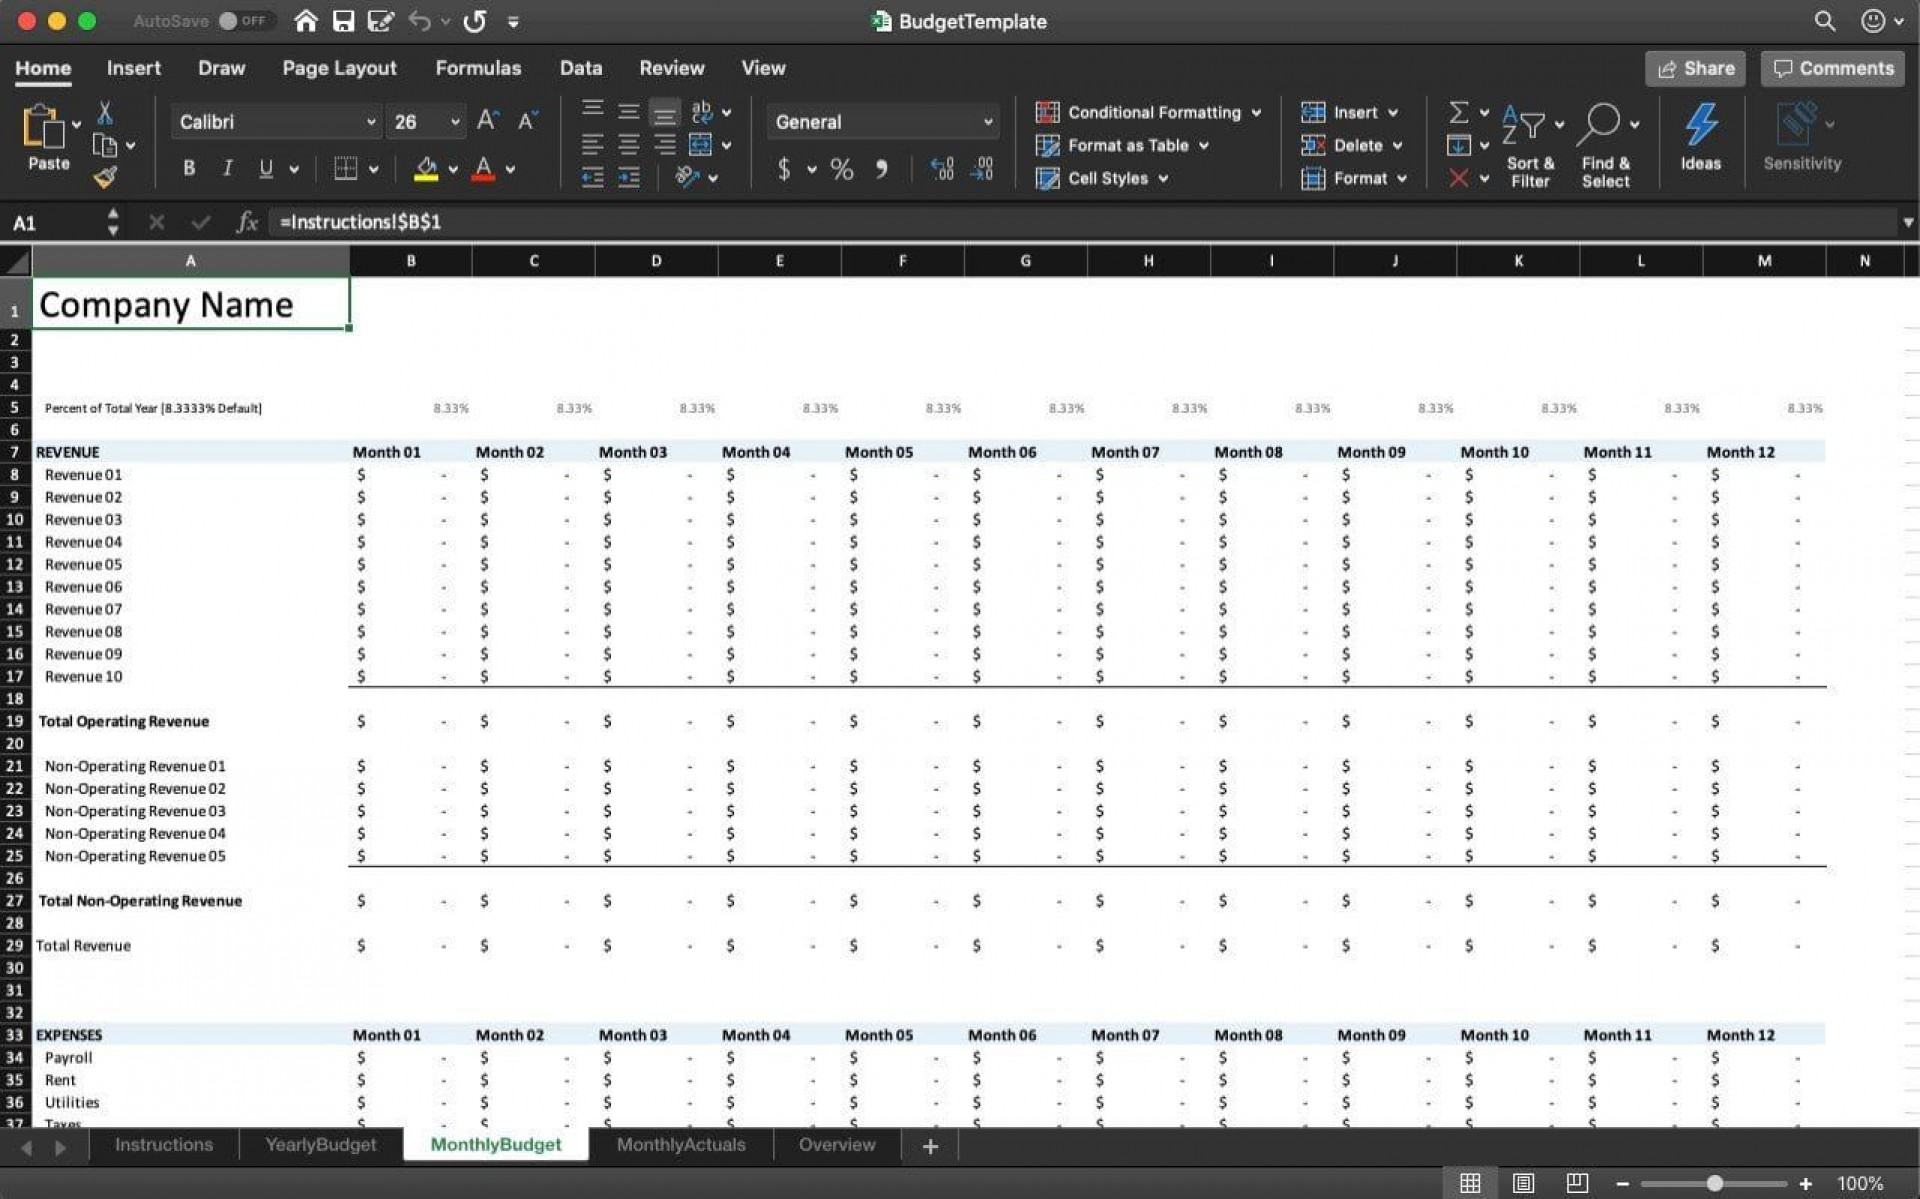 003 Archaicawful Excel Busines Budget Template High Definition  Small Monthly Yearly Free Spreadsheet1920